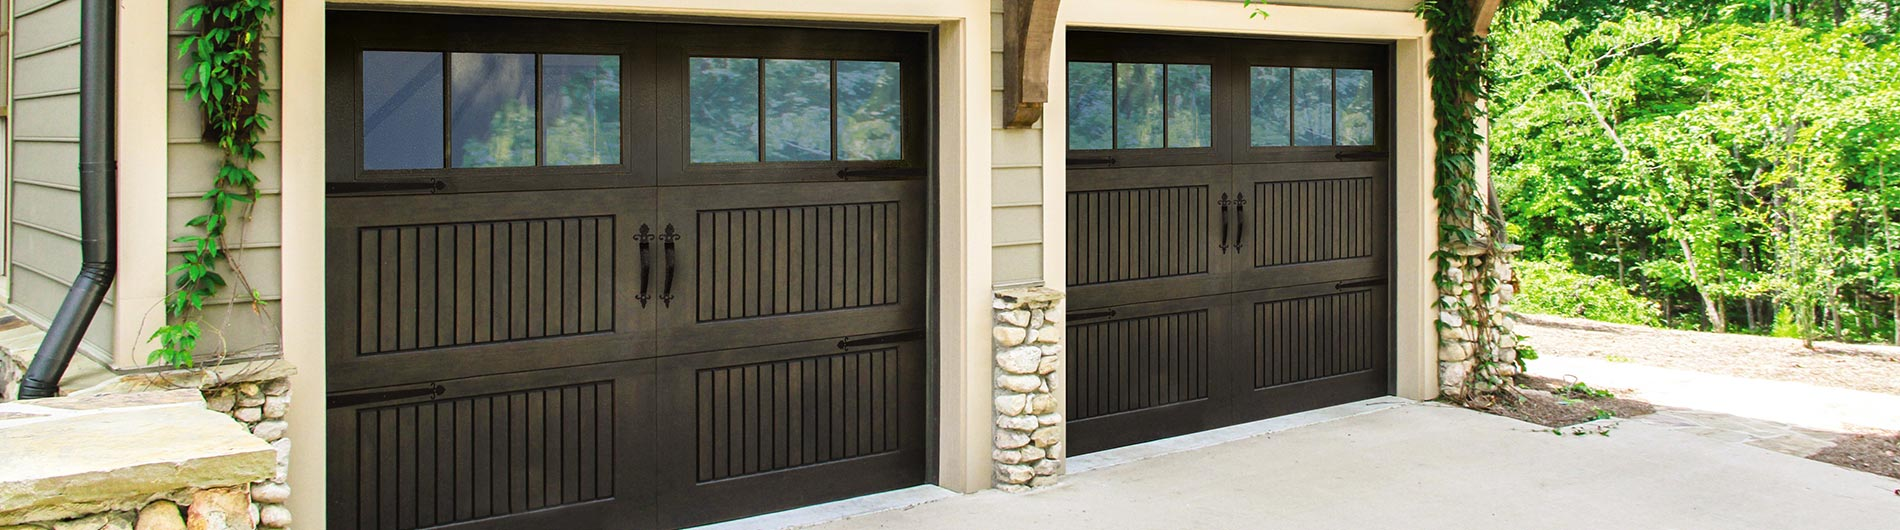 doors manufacturers fiberglass com cn garage and on suppliers lowes china market door countrysearch alibaba